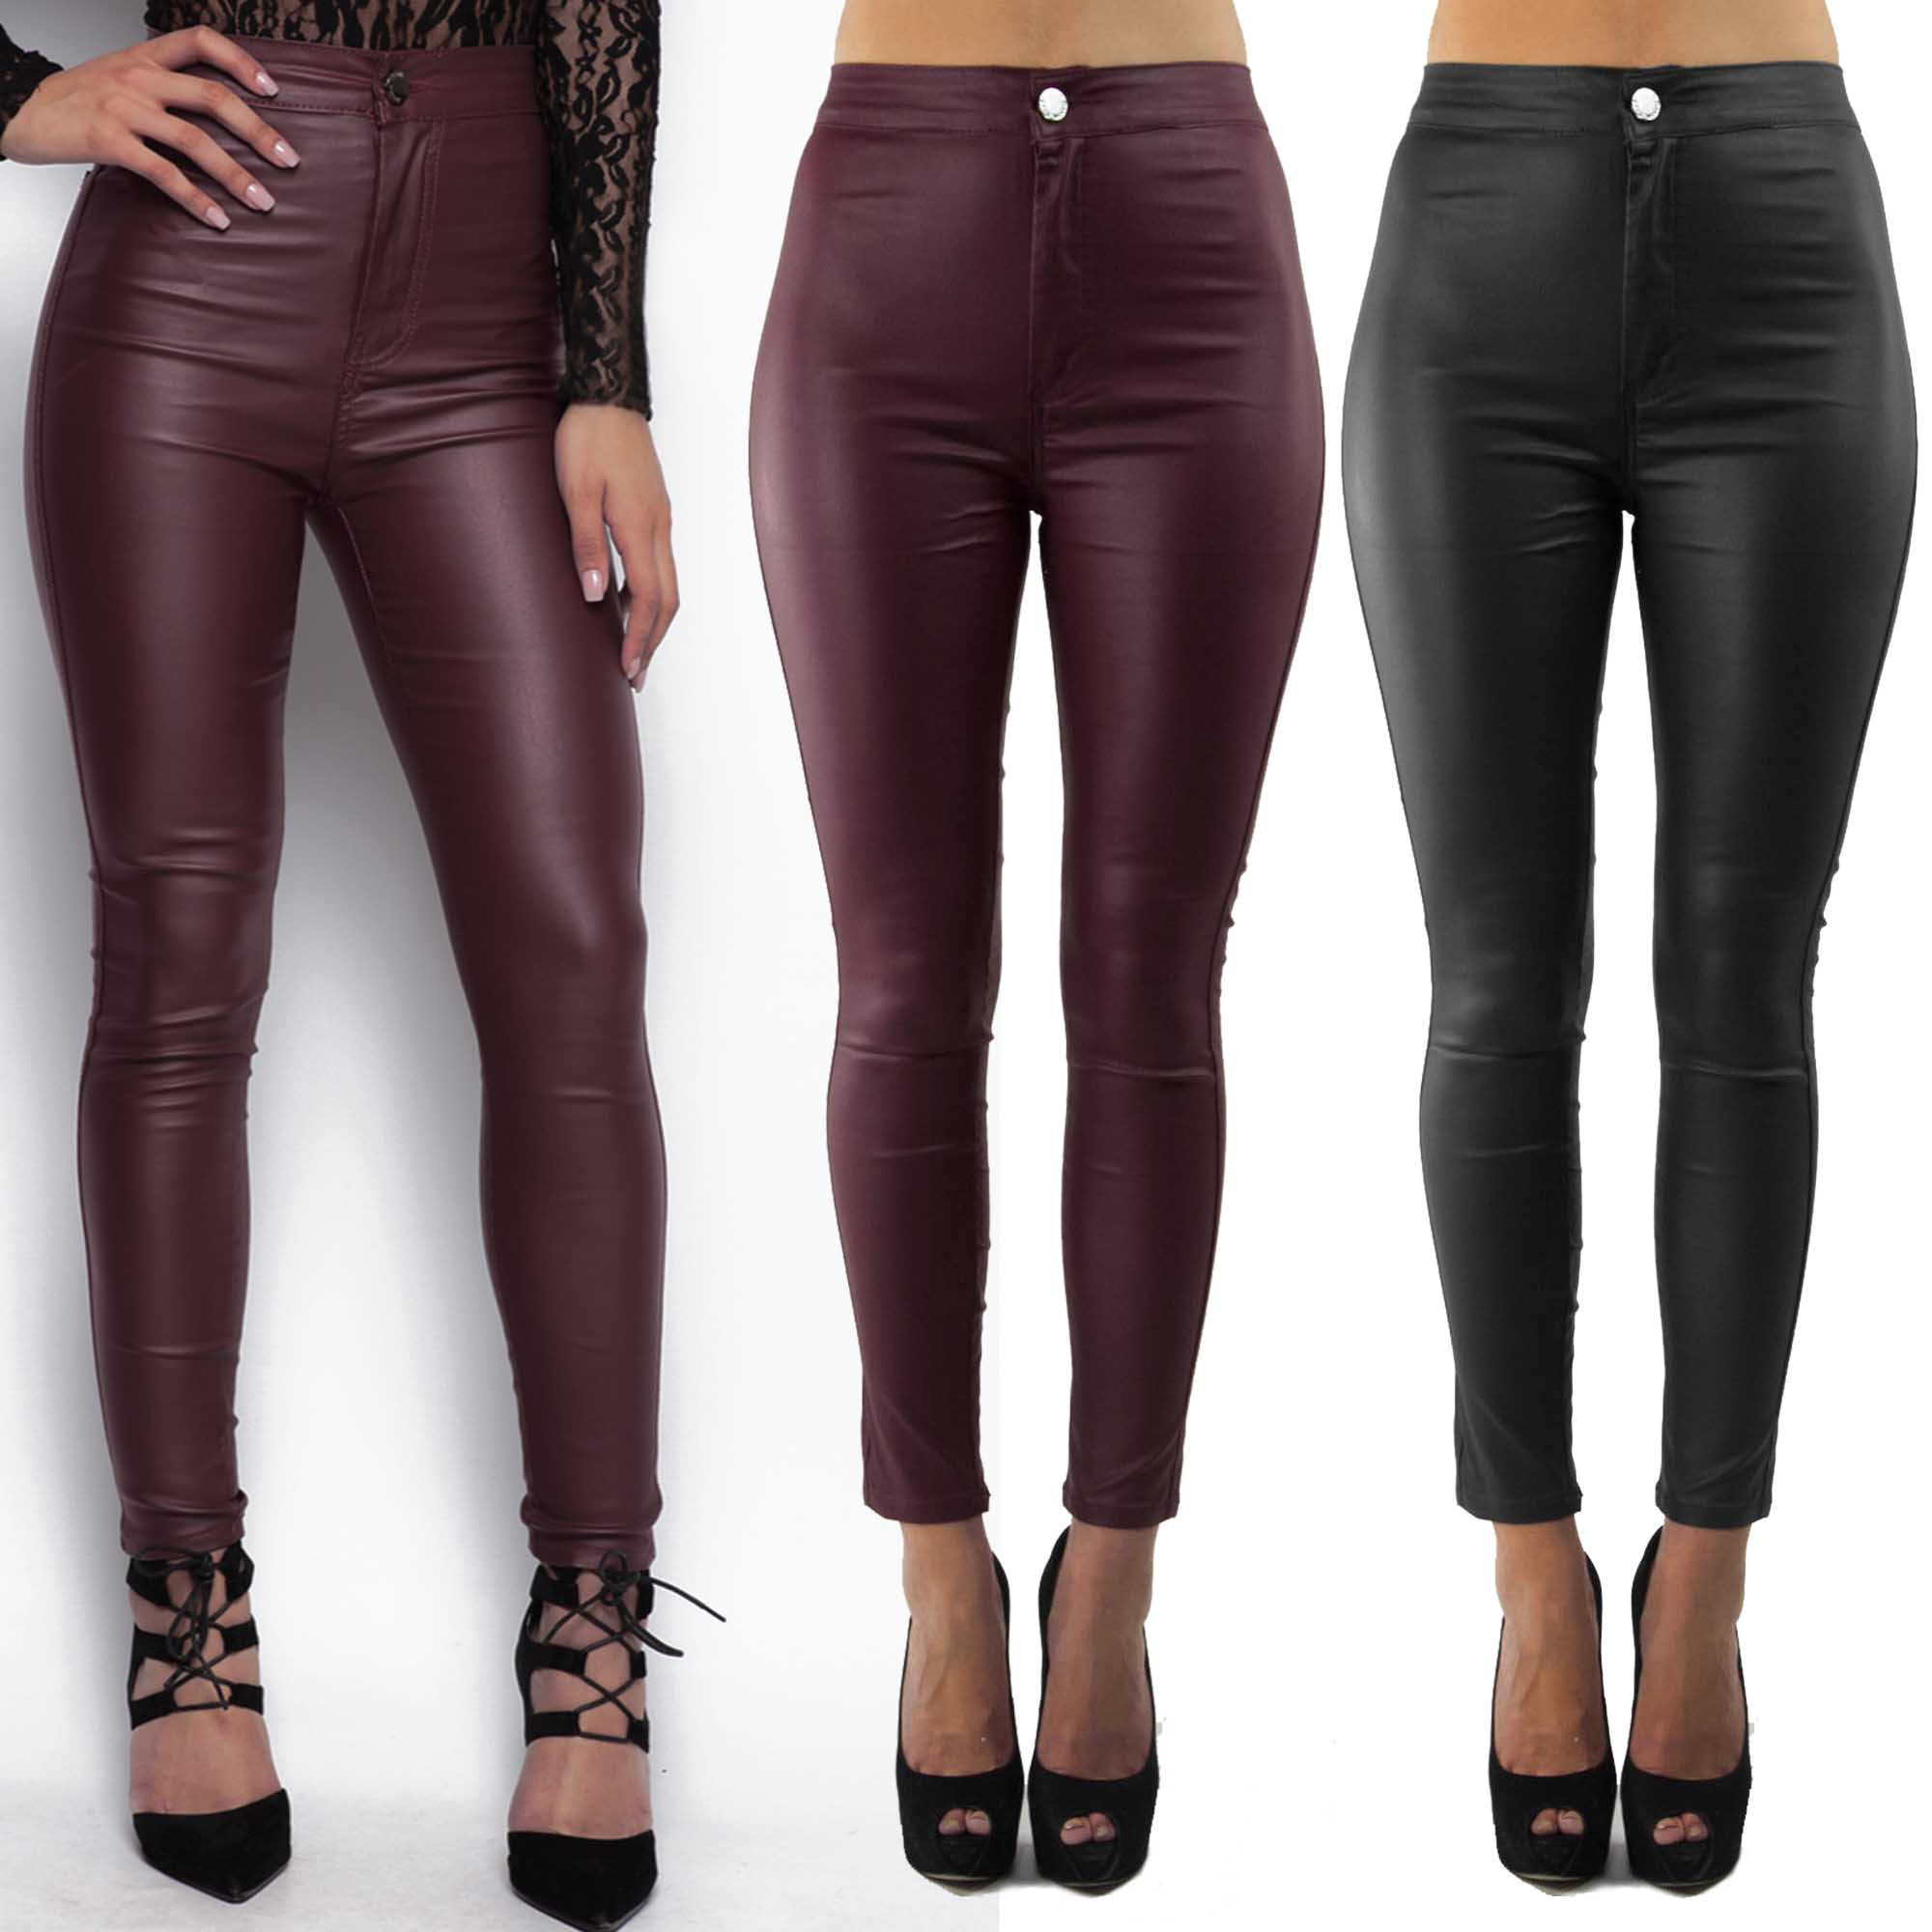 High waisted leather look skinny jeans